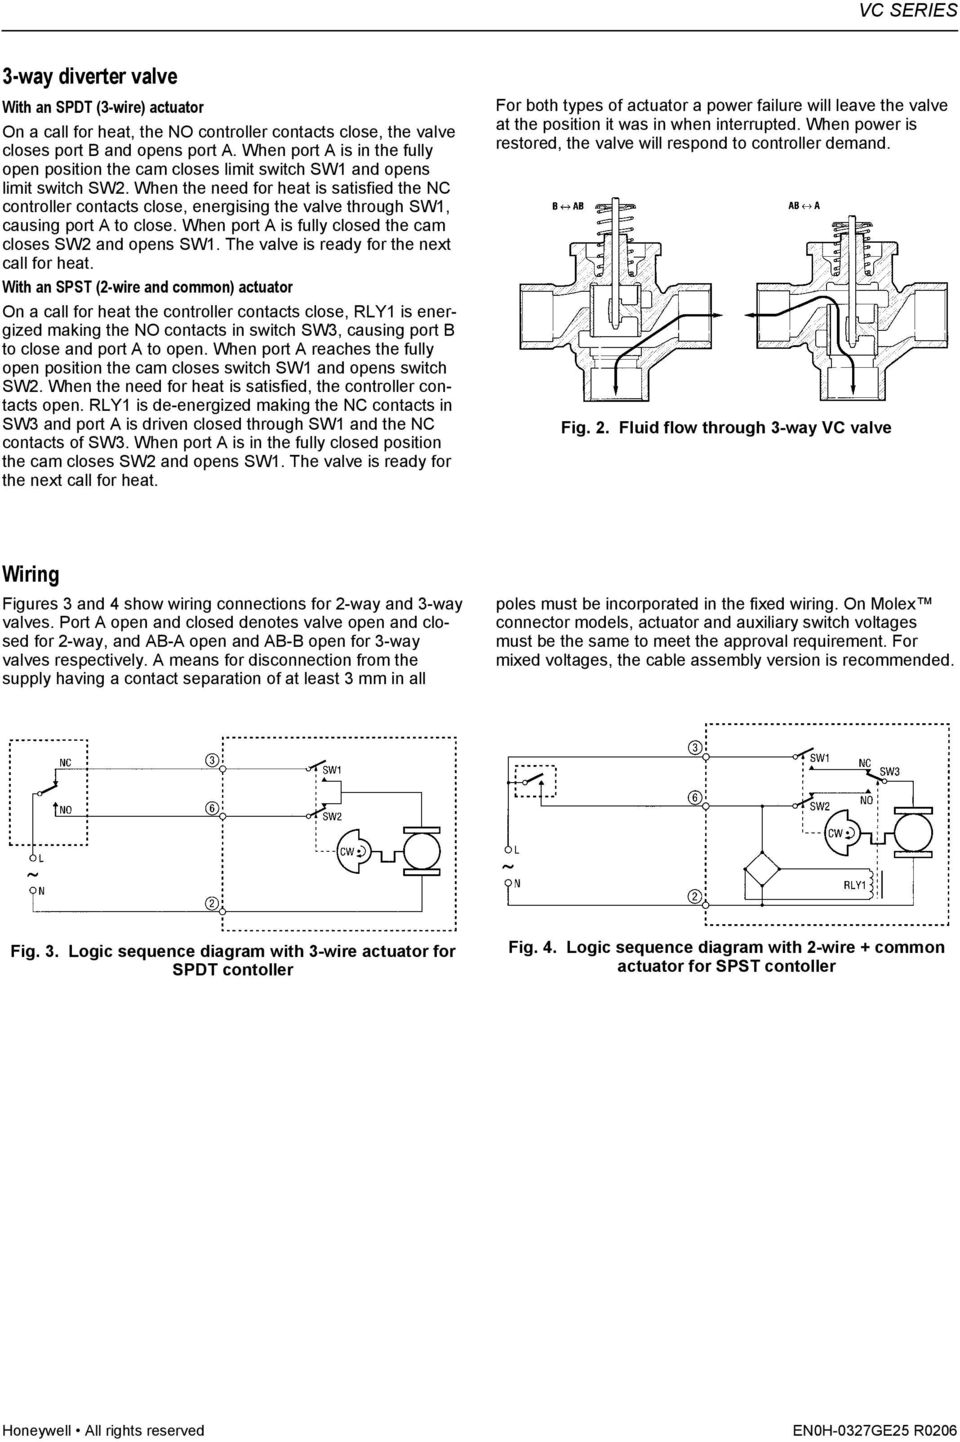 3 Way Diverter Switch Wiring Diagram Variations Schematics 4 Vc Series Zone Valves Balanced 2 And Hydronic Pdf